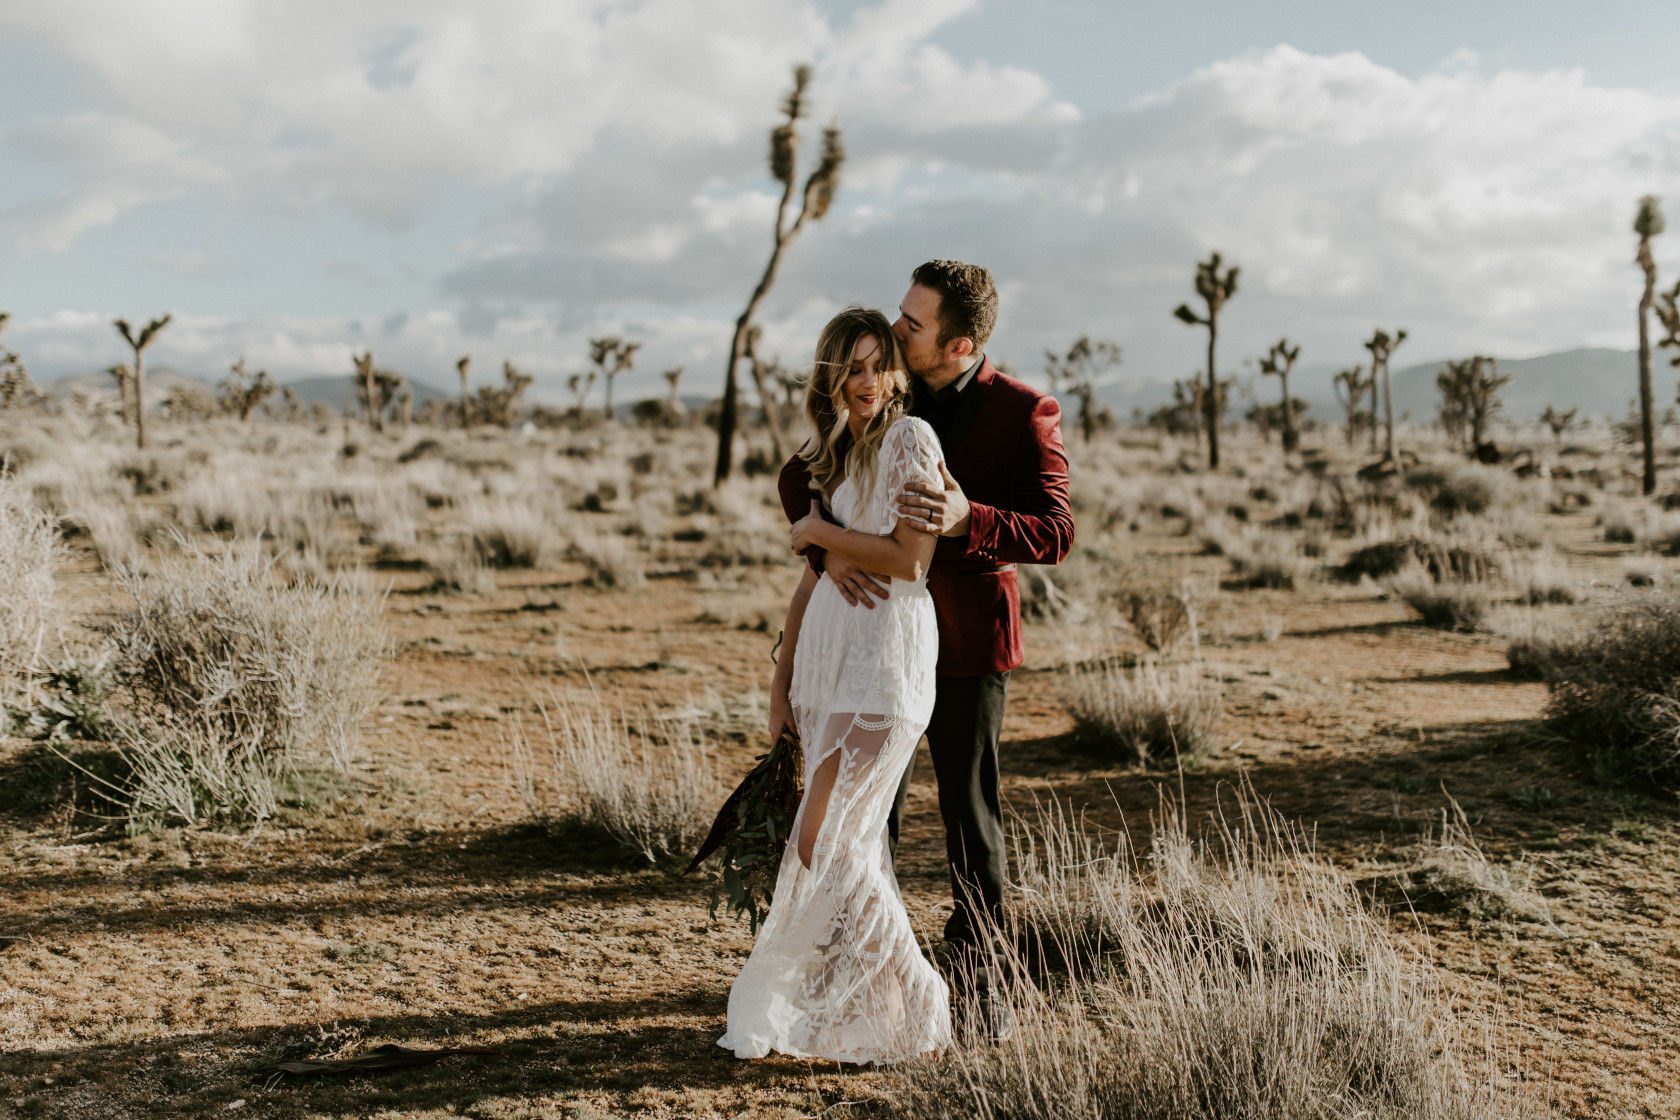 Jeremy kisses Alyssa in the middle of Joshua Tree National Park at Joshua Tree National Park, CA Elopement wedding photography at Joshua Tree National Park by Sienna Plus Josh.